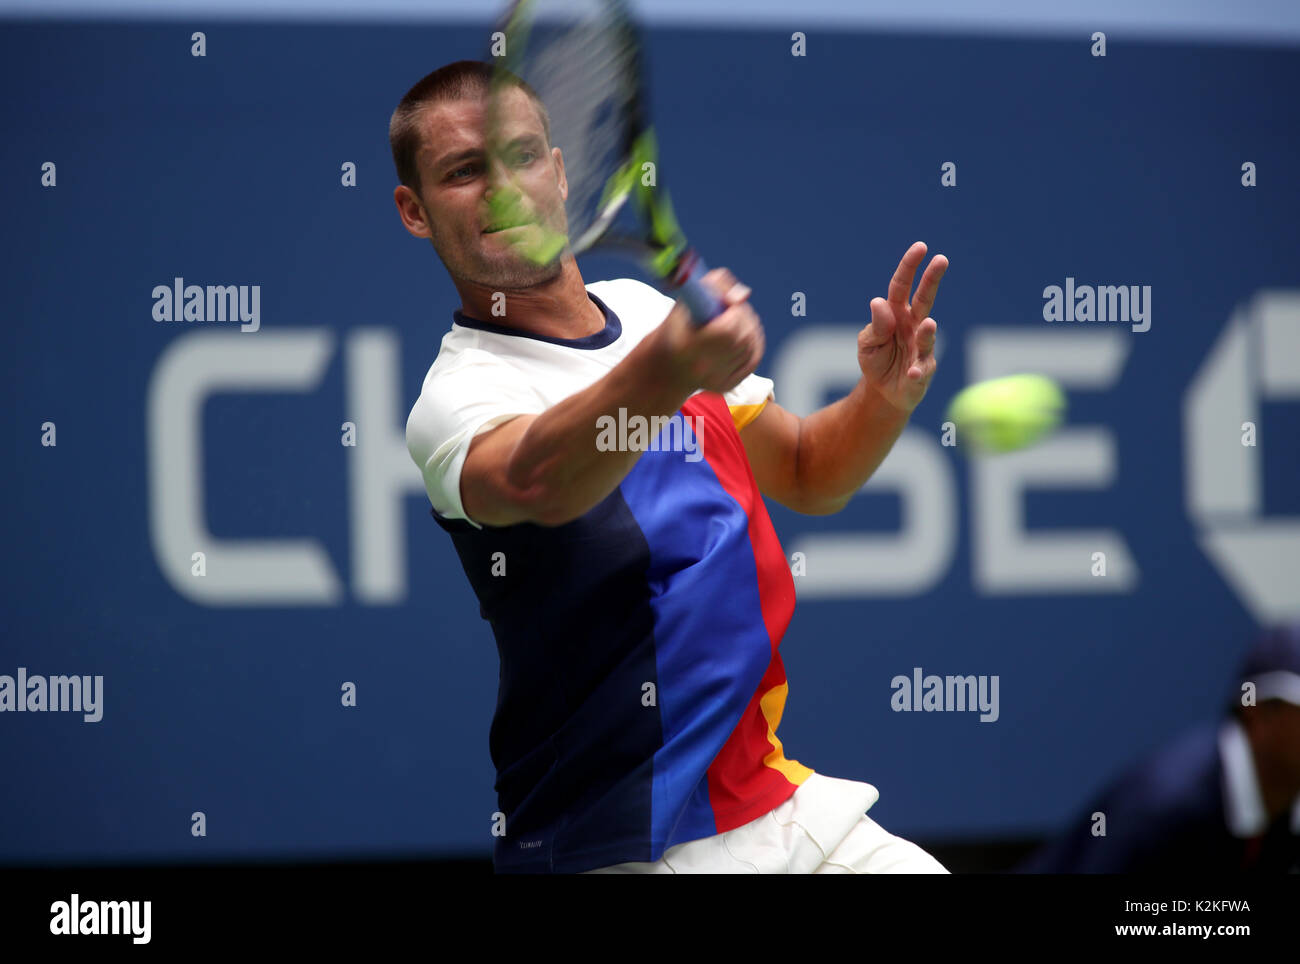 New York, USA. 31st Aug, 2017. Mikhail Youzhny of Russia in action against Roger Federer of Switzerland during their Second round match at the US Open in Flushing Meadows, New York. Credit: Adam Stoltman/Alamy Live News - Stock Image